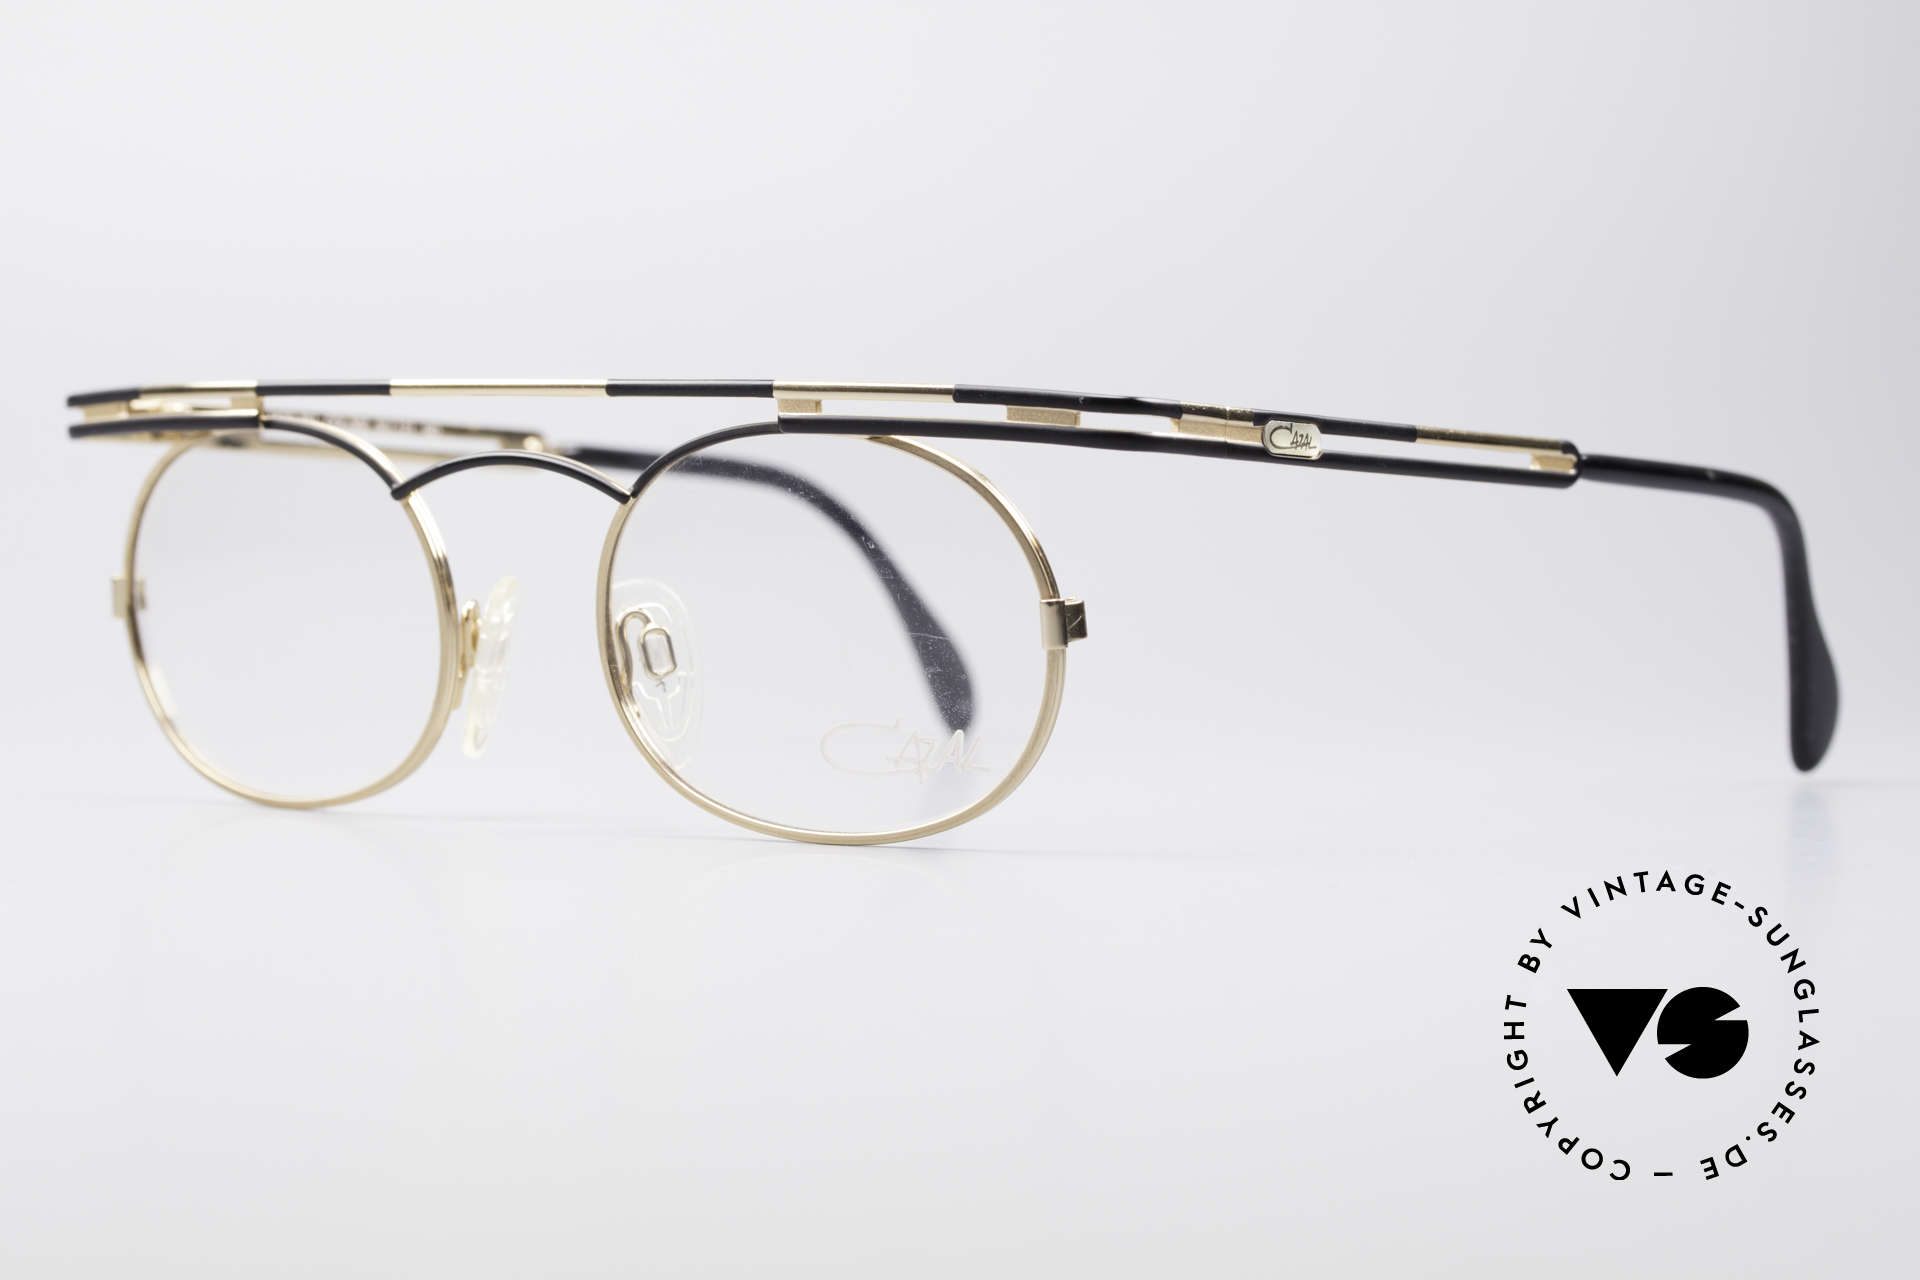 Cazal 761 Vintage Frame NO Retro Glasses, top-notch craftsmanship (frame 'made in Germany'), Made for Men and Women